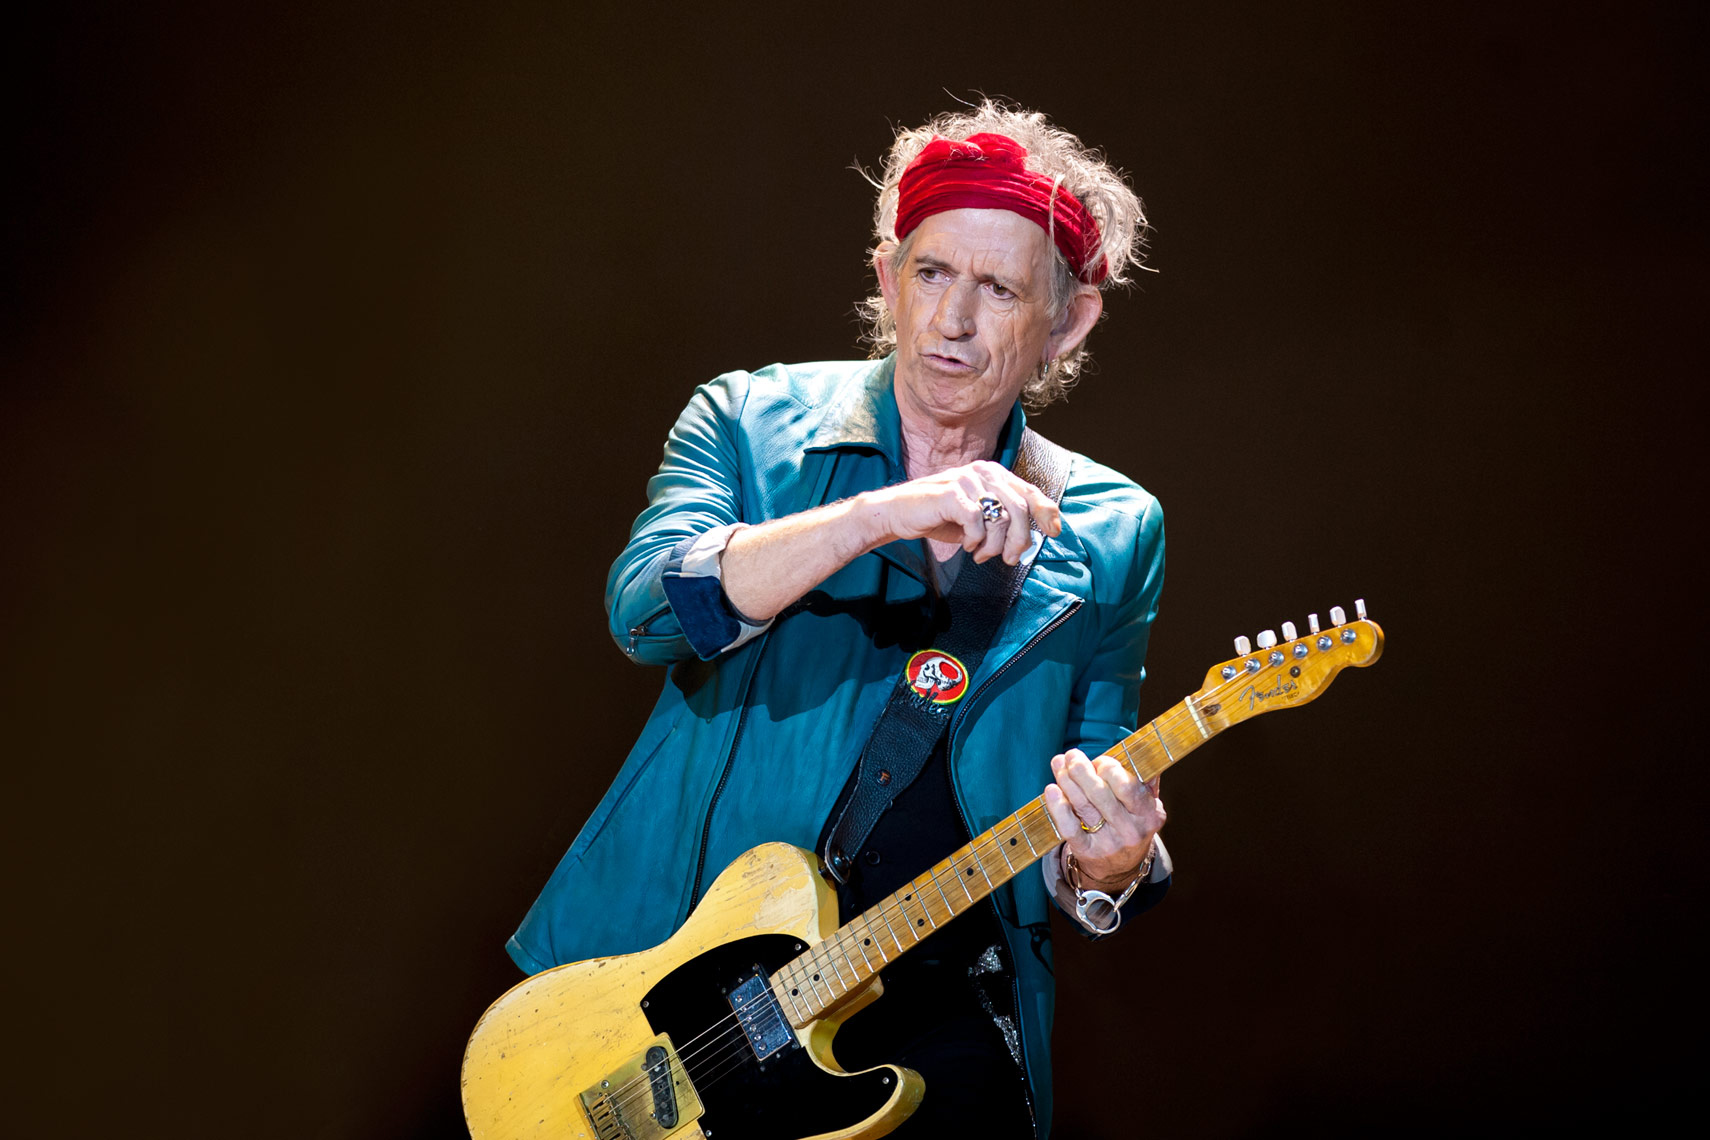 Keith-Richards-Rolling-Stones-O2-Arena.jpg